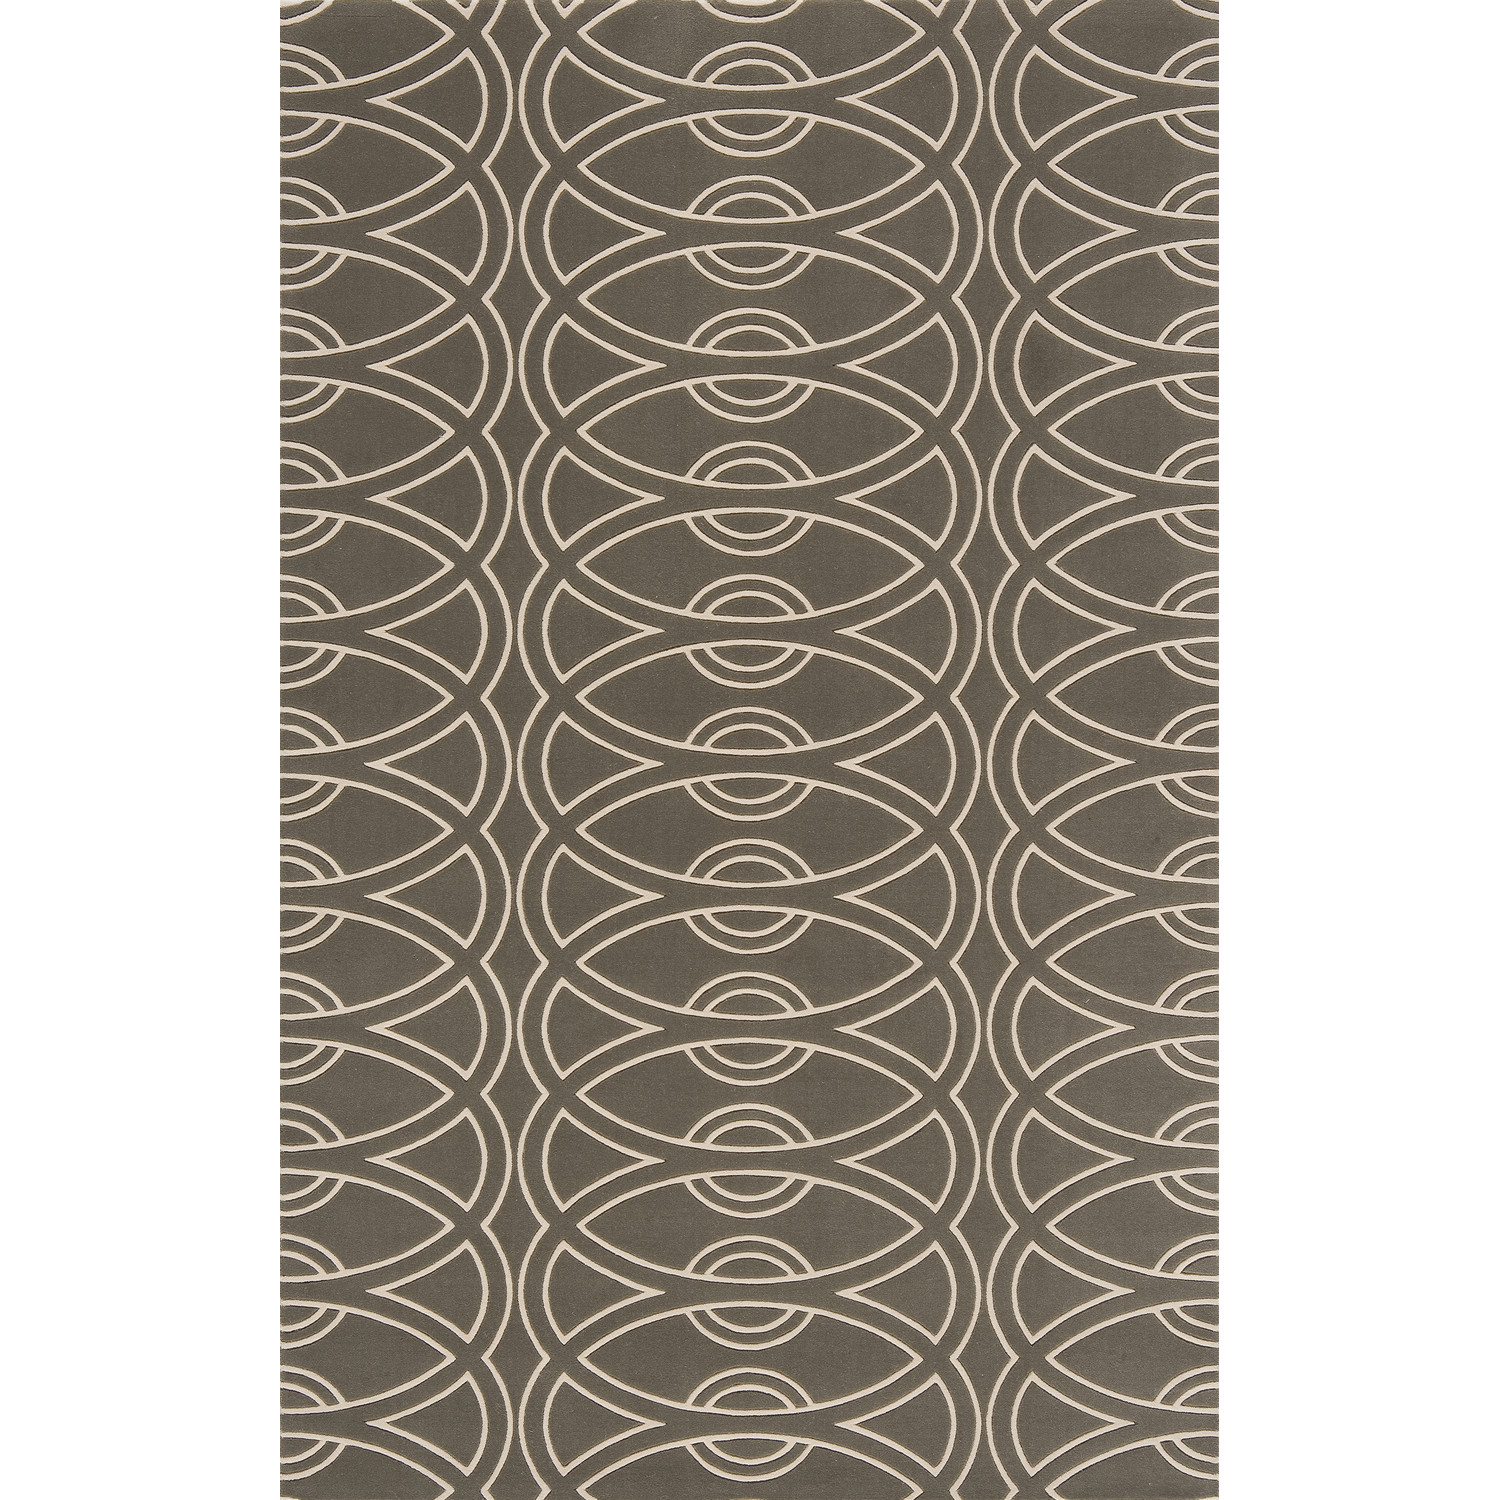 Charming Elements Grey Area Rug By Momeni Rugs For Floor Decor Ideas